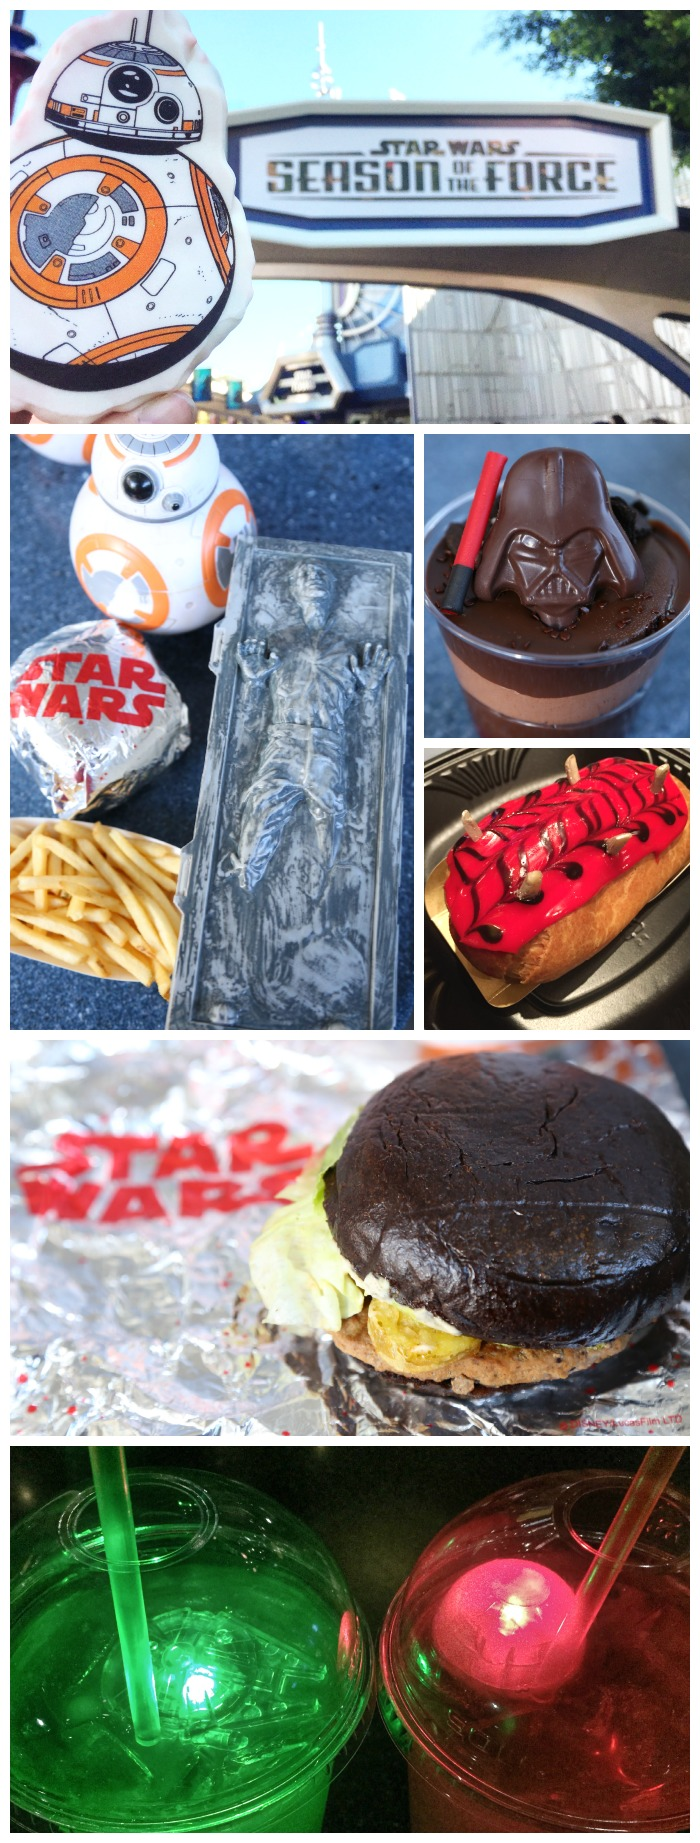 Star Wars Food Disneyland